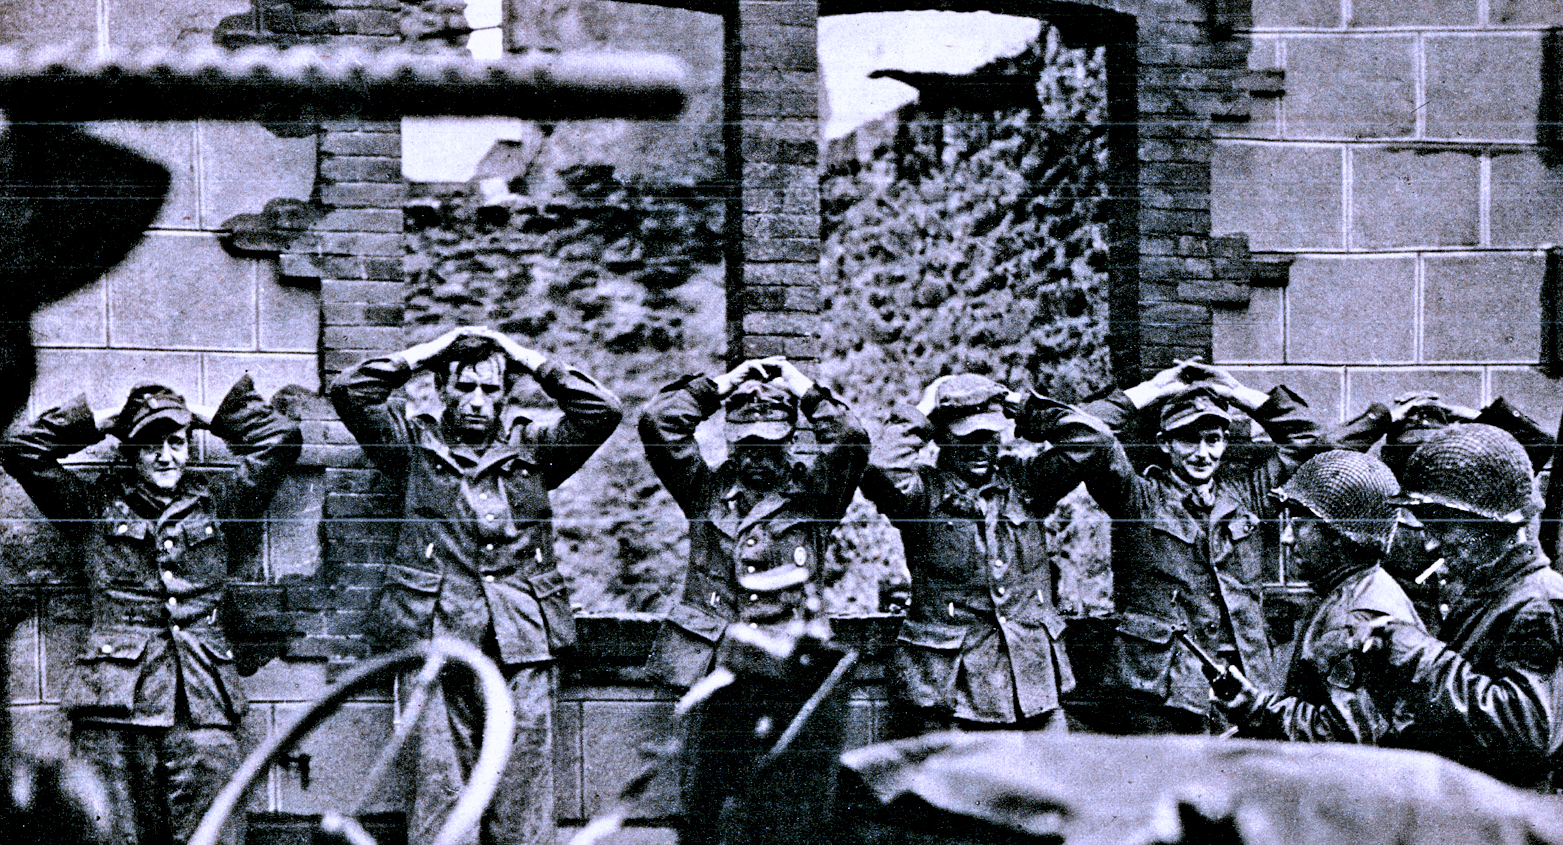 July 30, 1944 – News From The Front – Allies Picking Up Speed On The Western Front – Russians Poised To Take Warsaw.